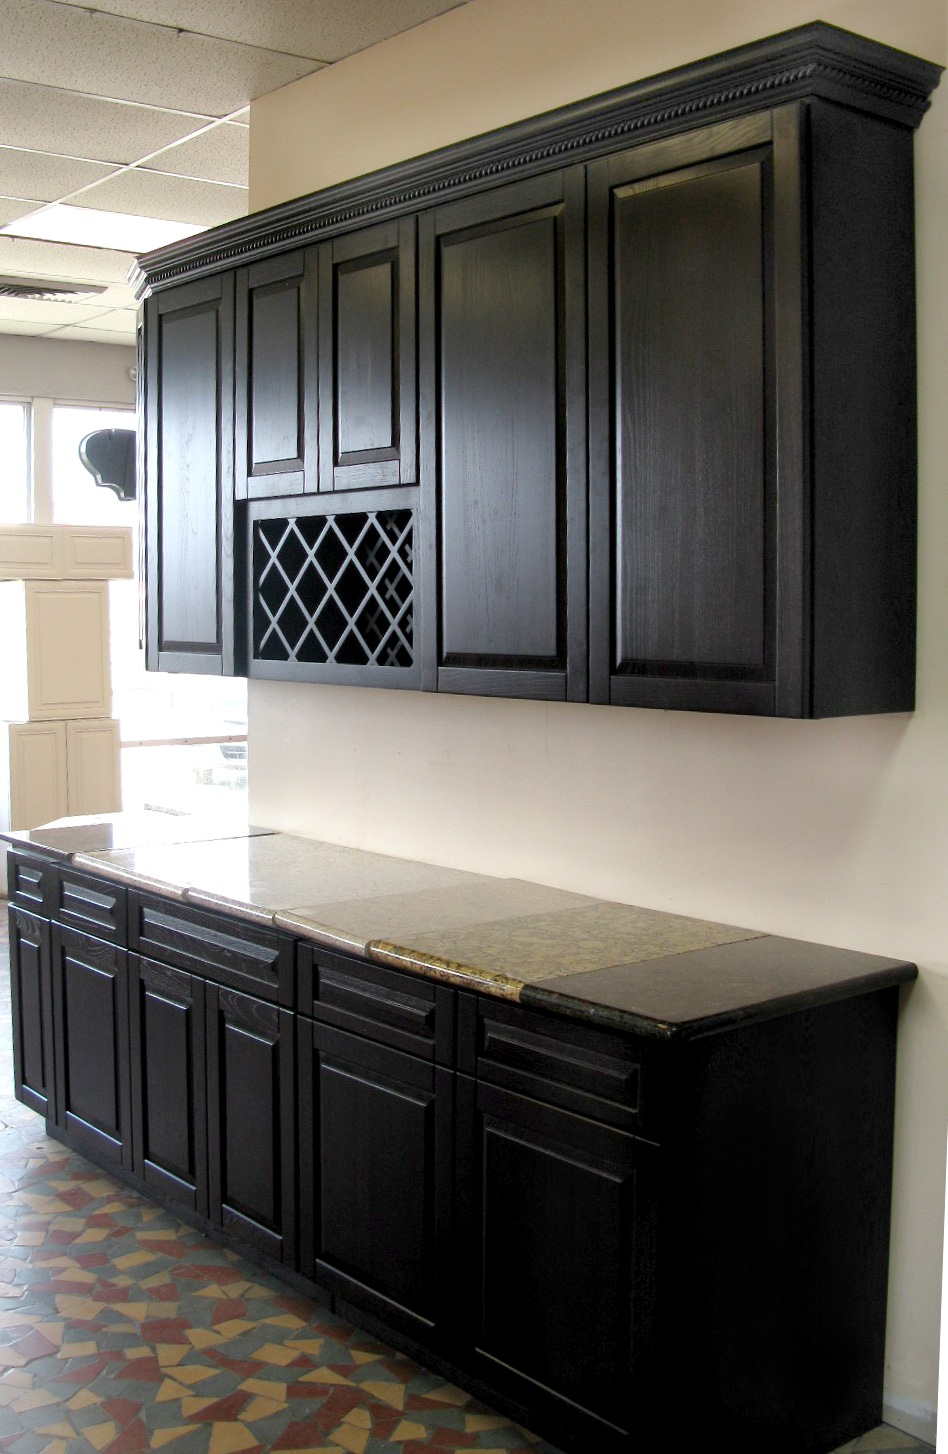 Cabinets for kitchen photos black kitchen cabinets Black cabinet kitchens pictures